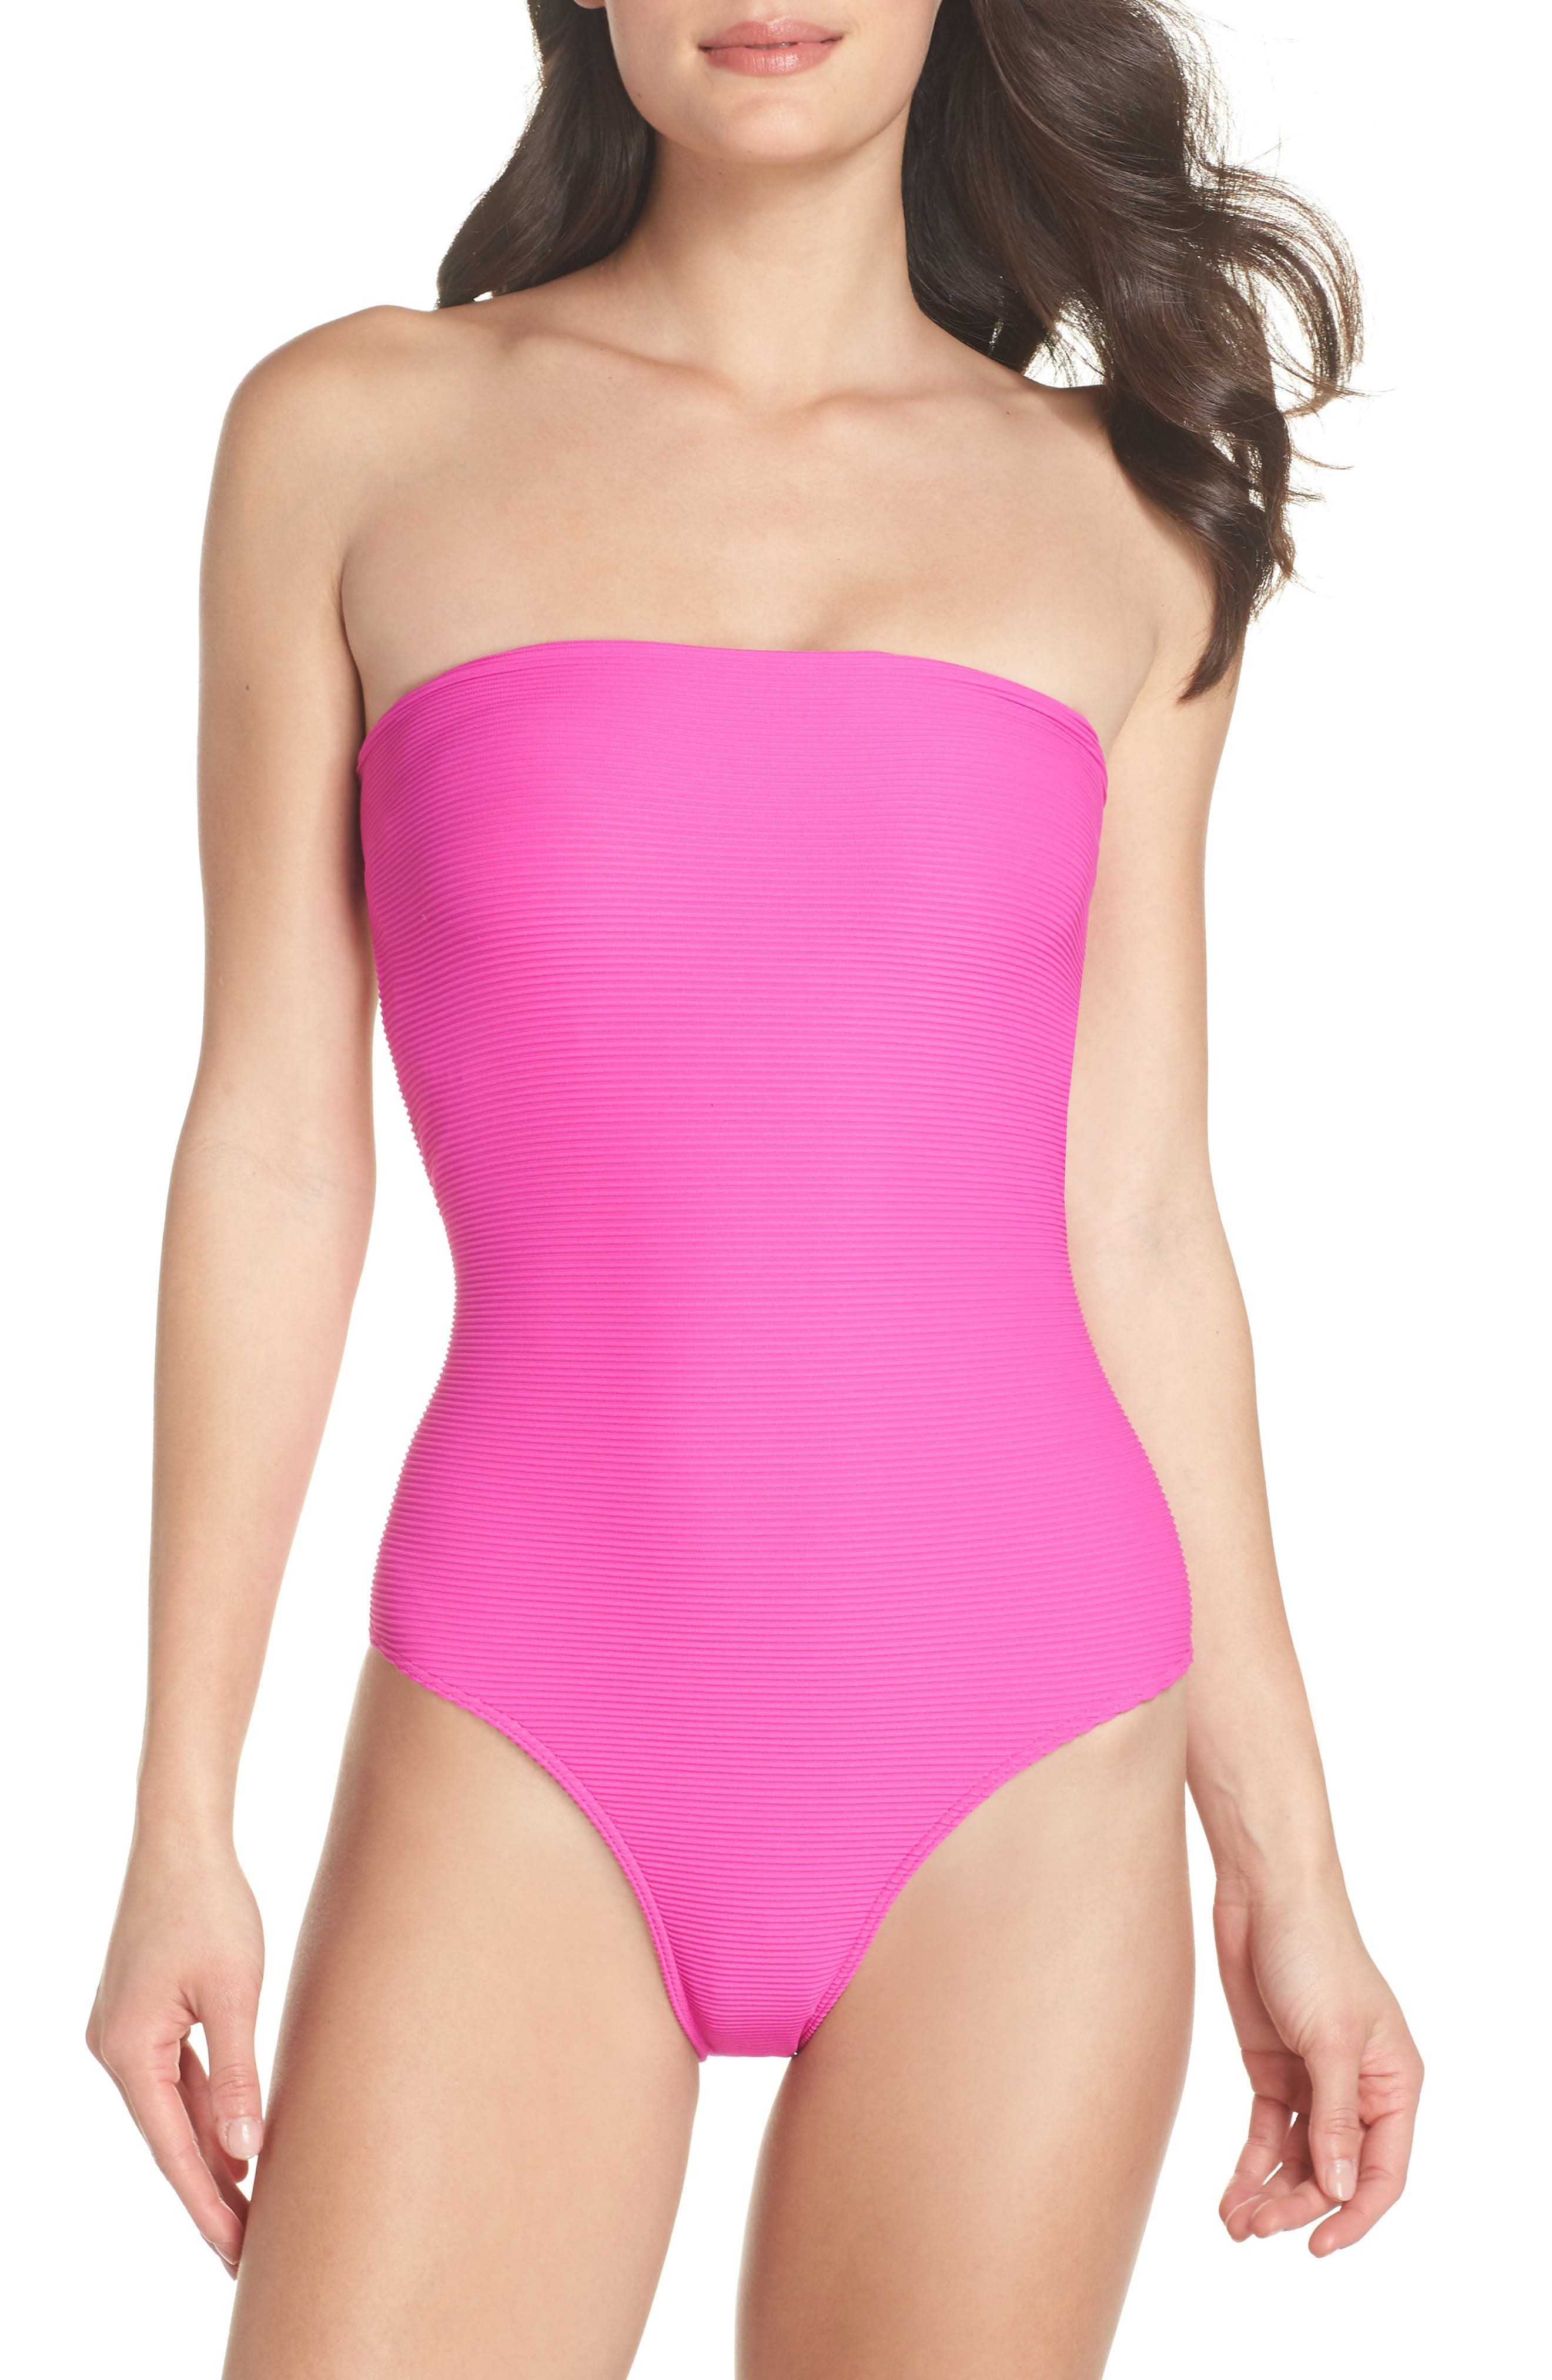 Tanlines Strapless One-Piece Swimsuit,                             Main thumbnail 1, color,                             685